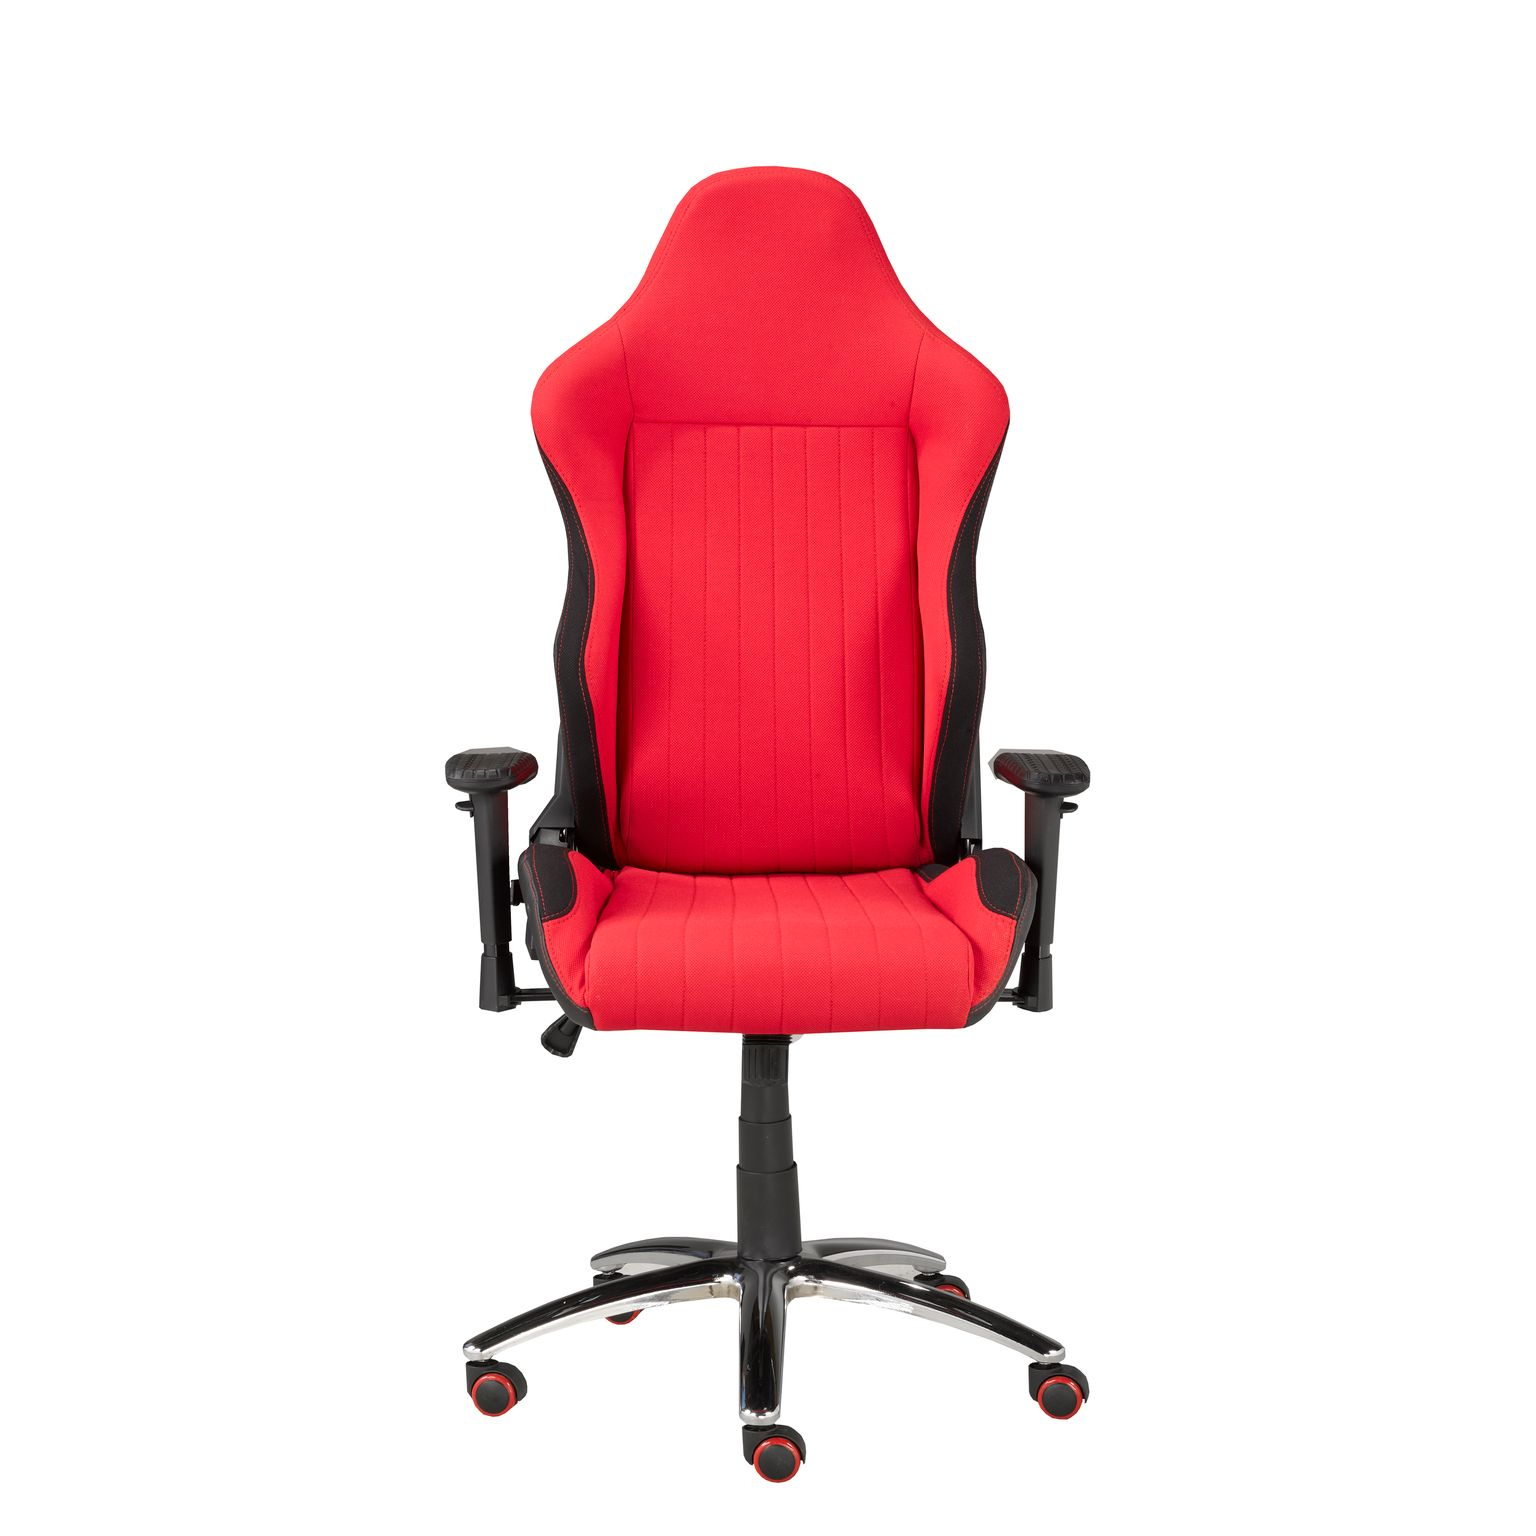 OFFICE CHAIR - BLACK/RED